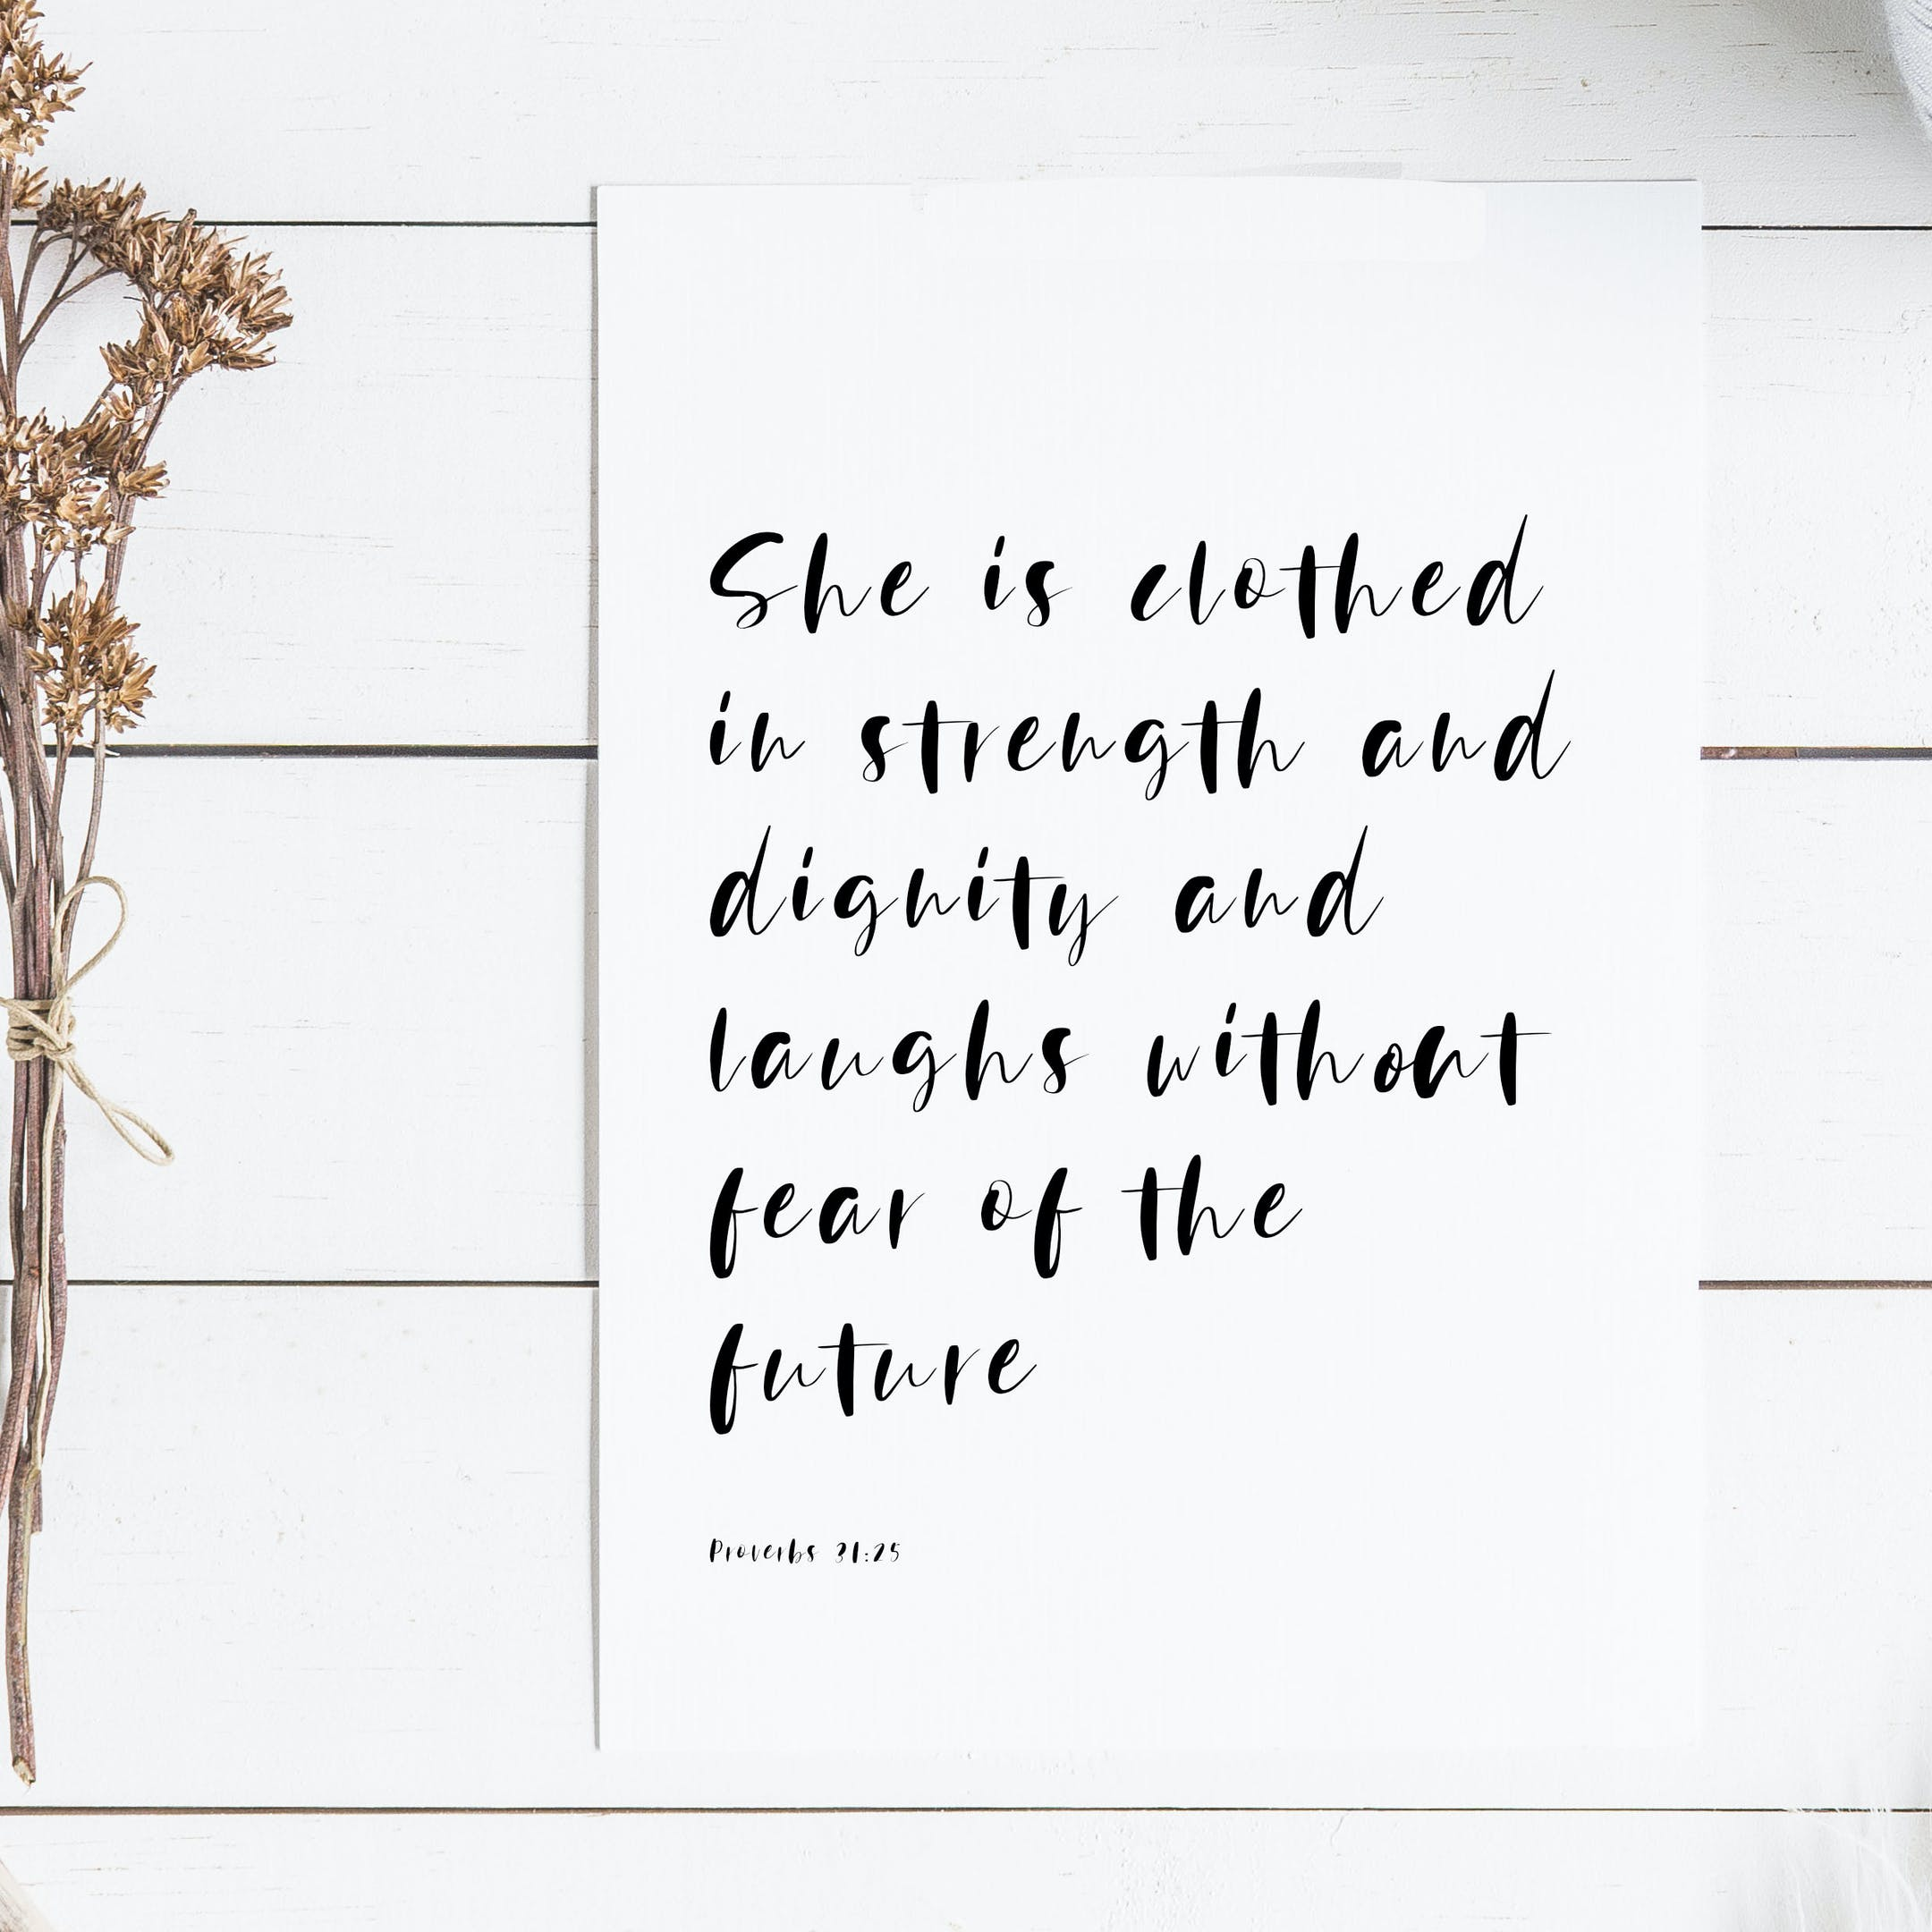 Proverbs 31:25 Print - Christian Lettering Company